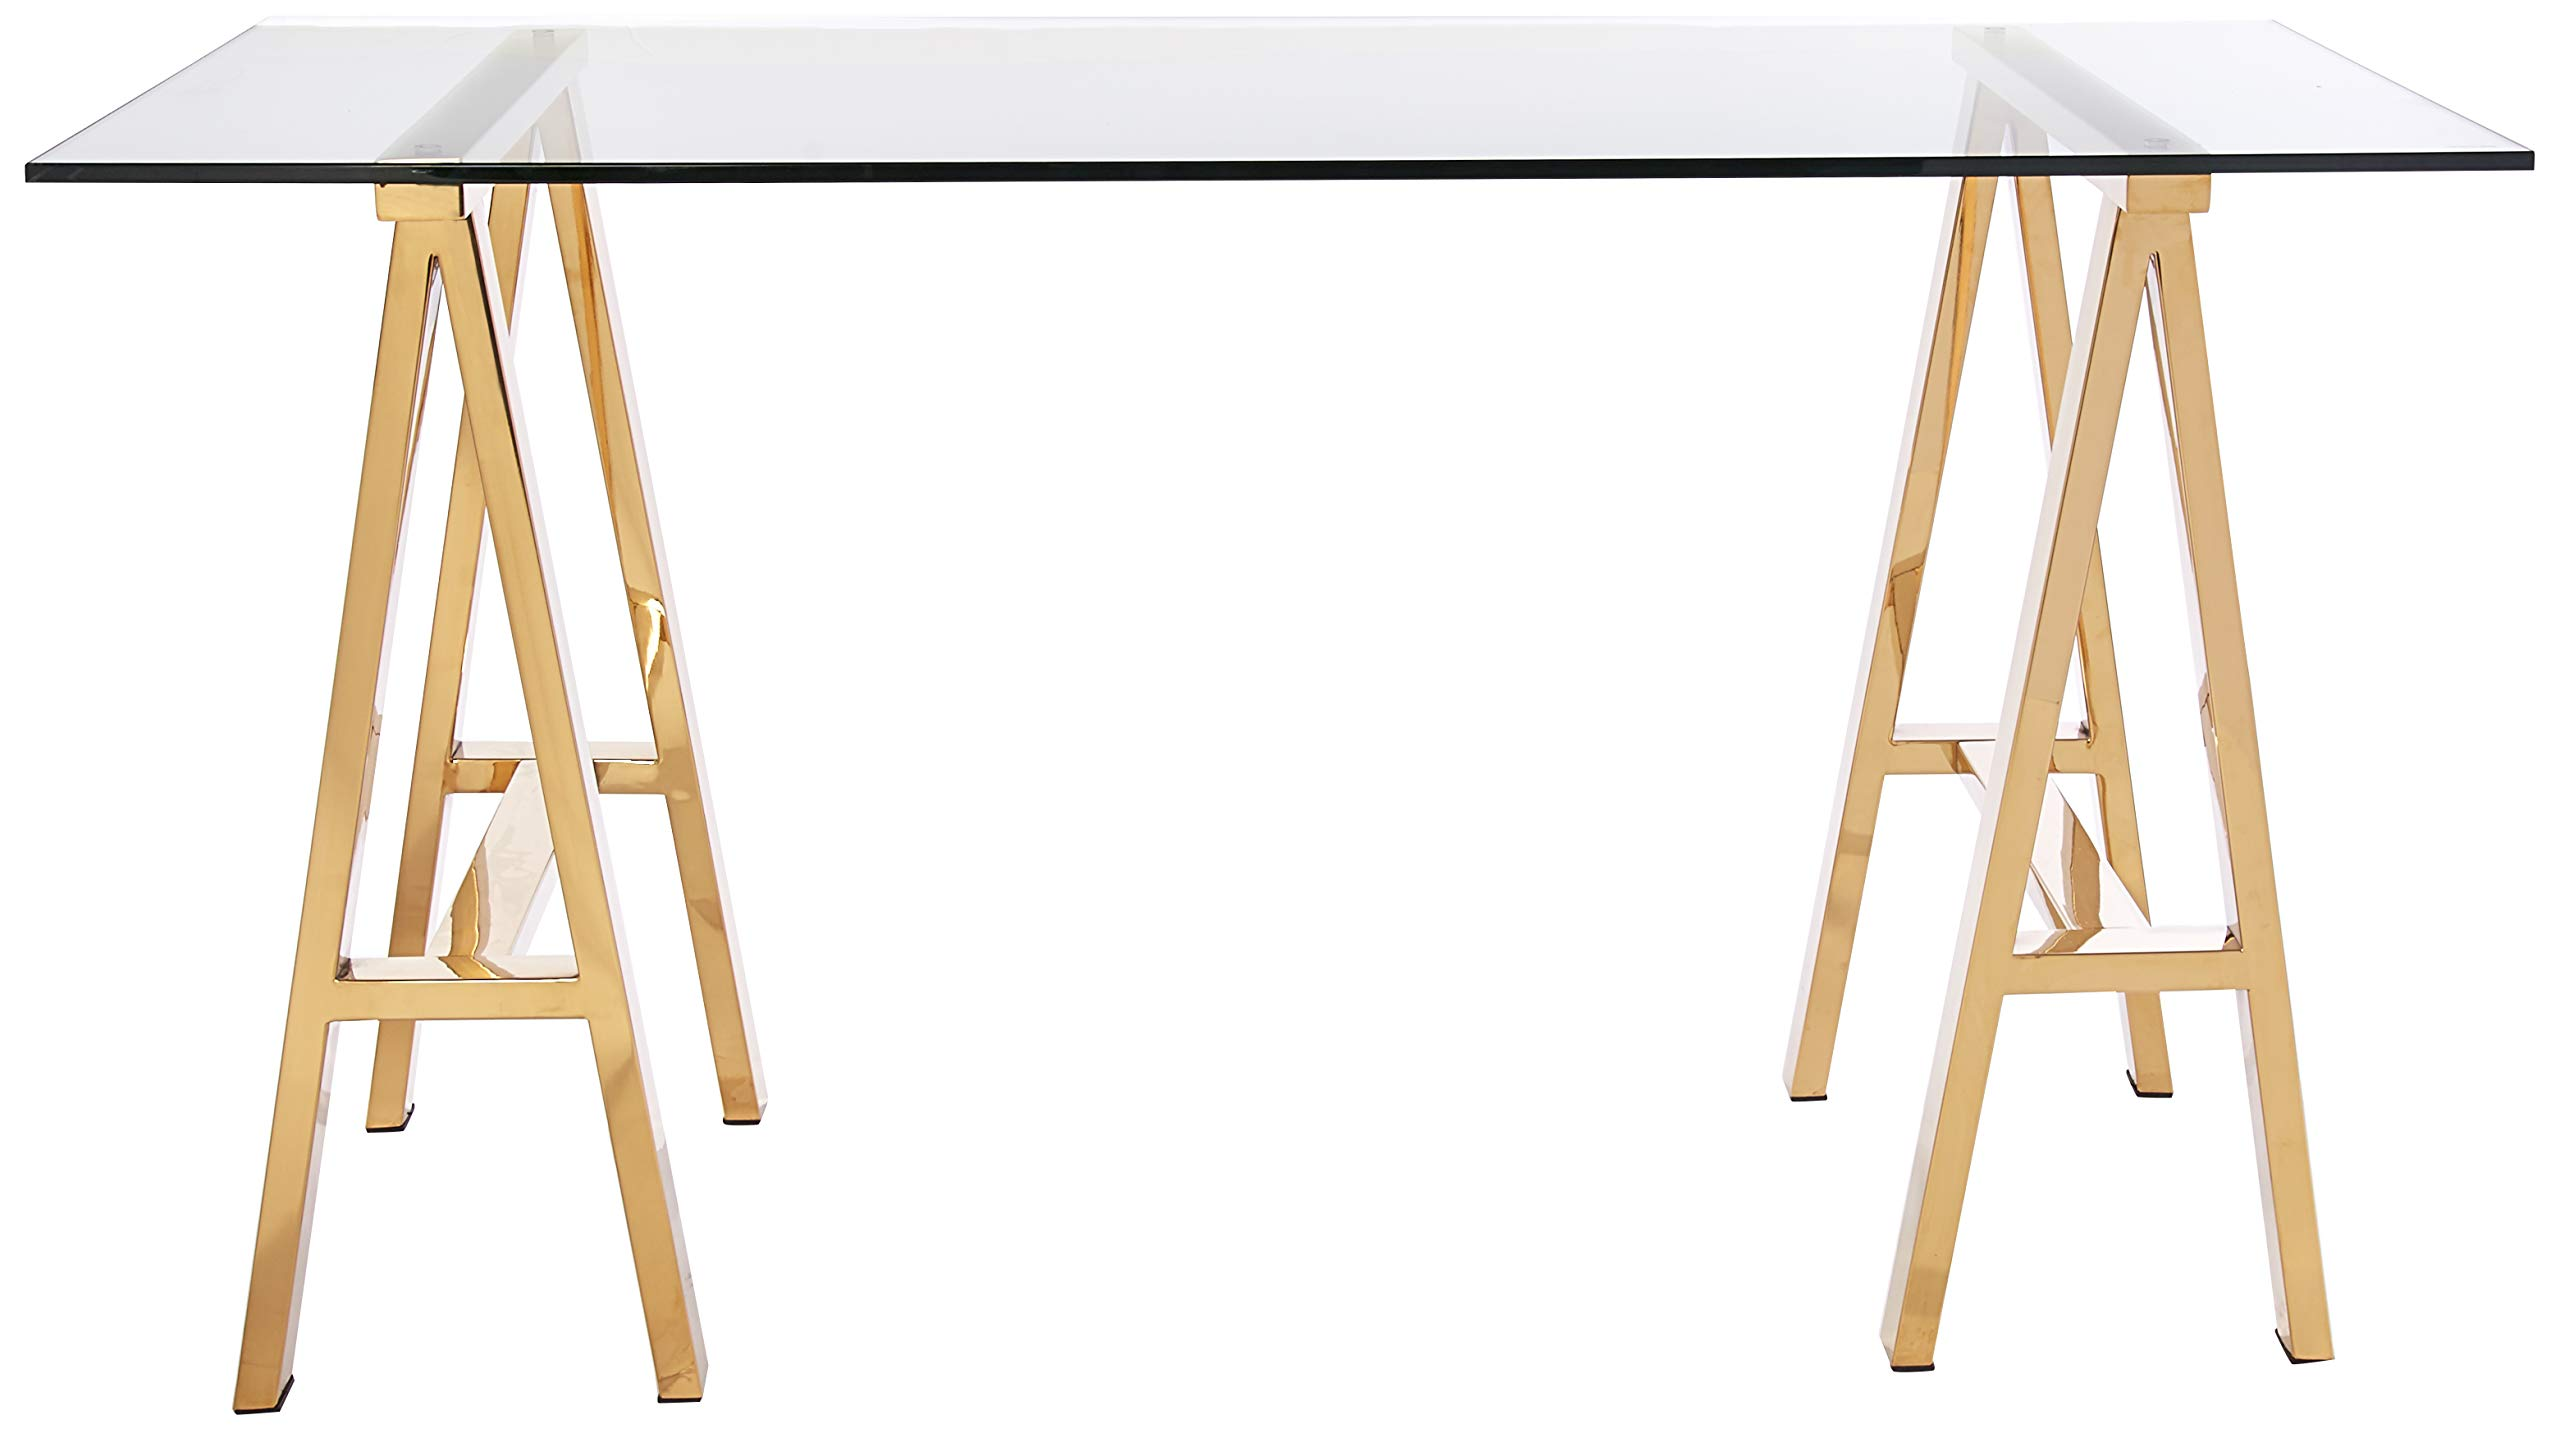 Pangea Home ZBRDY-DSK S GLD Brady Desk, Small, High Polish Gold - Manufacturer: Pangea Home Material Type: Stainless Steel and Tempered Glass Color name: High Polish Gold - writing-desks, living-room-furniture, living-room - 71RbOBBfs8L -